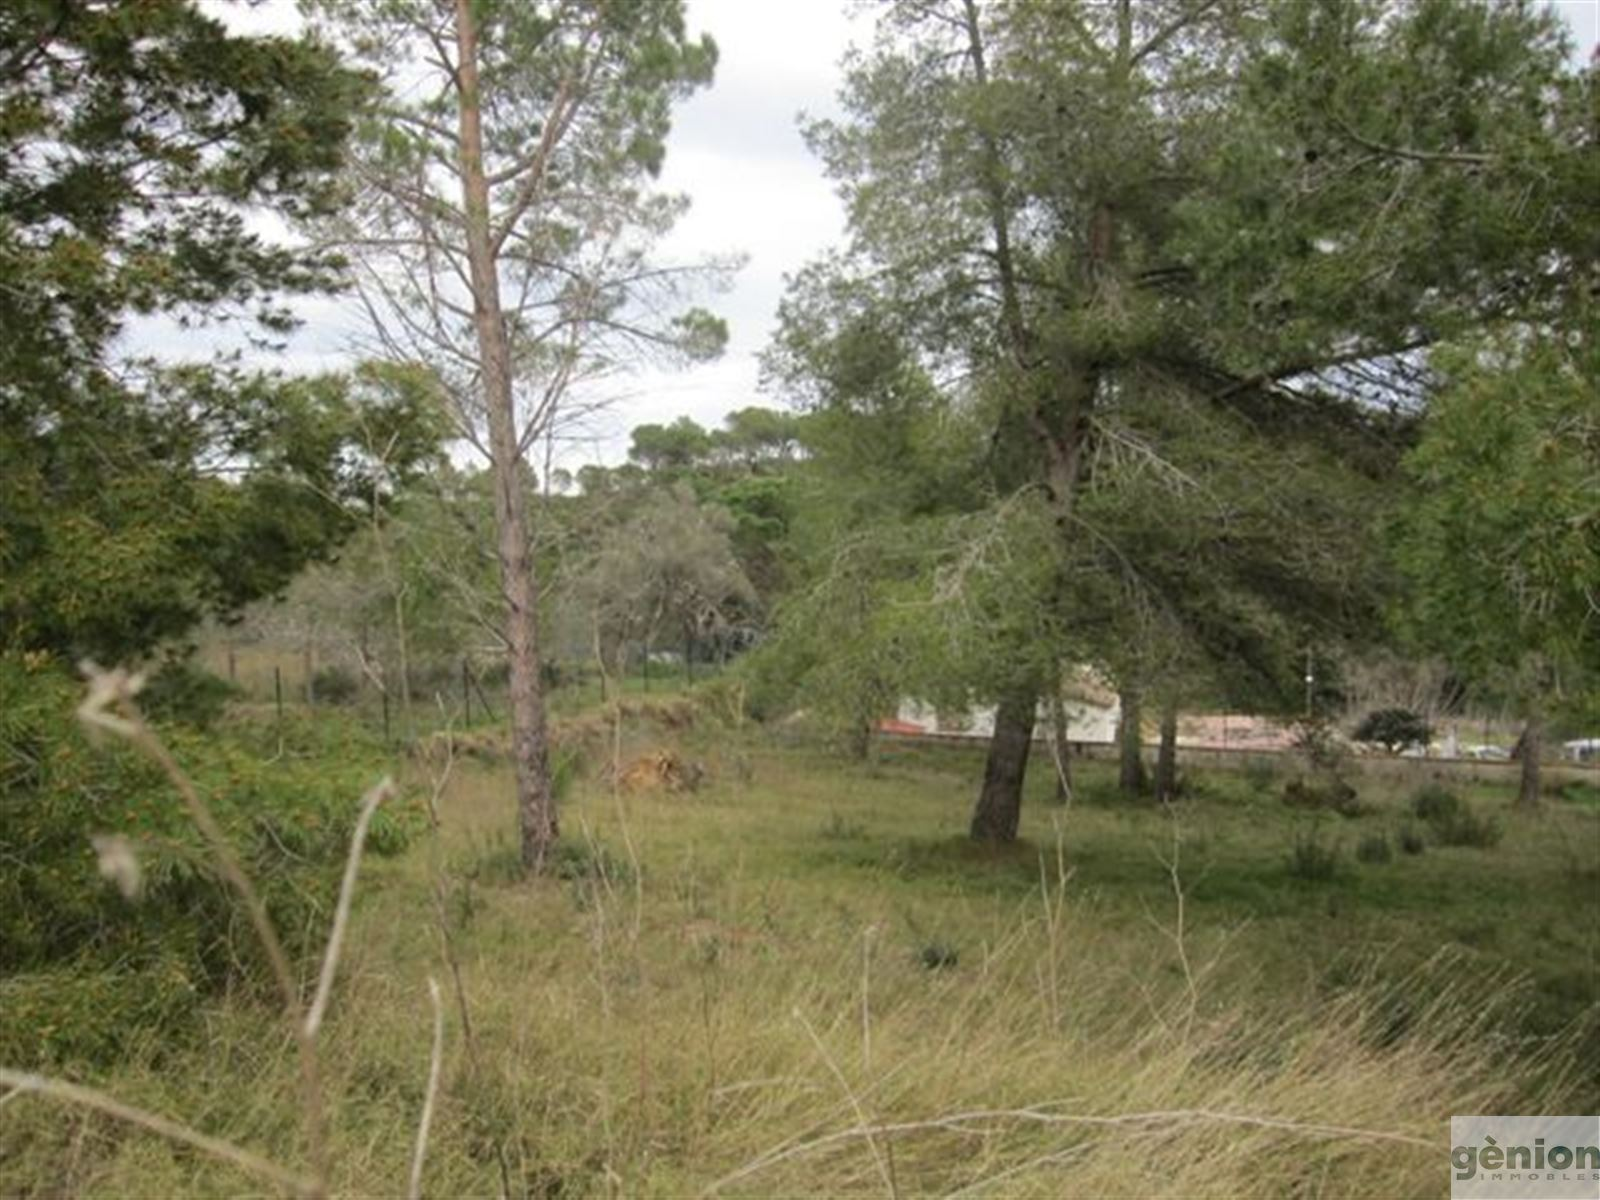 SET OF 39 PLOTS IN PALAMÓS, 32.822M² OF TOTAL LAND